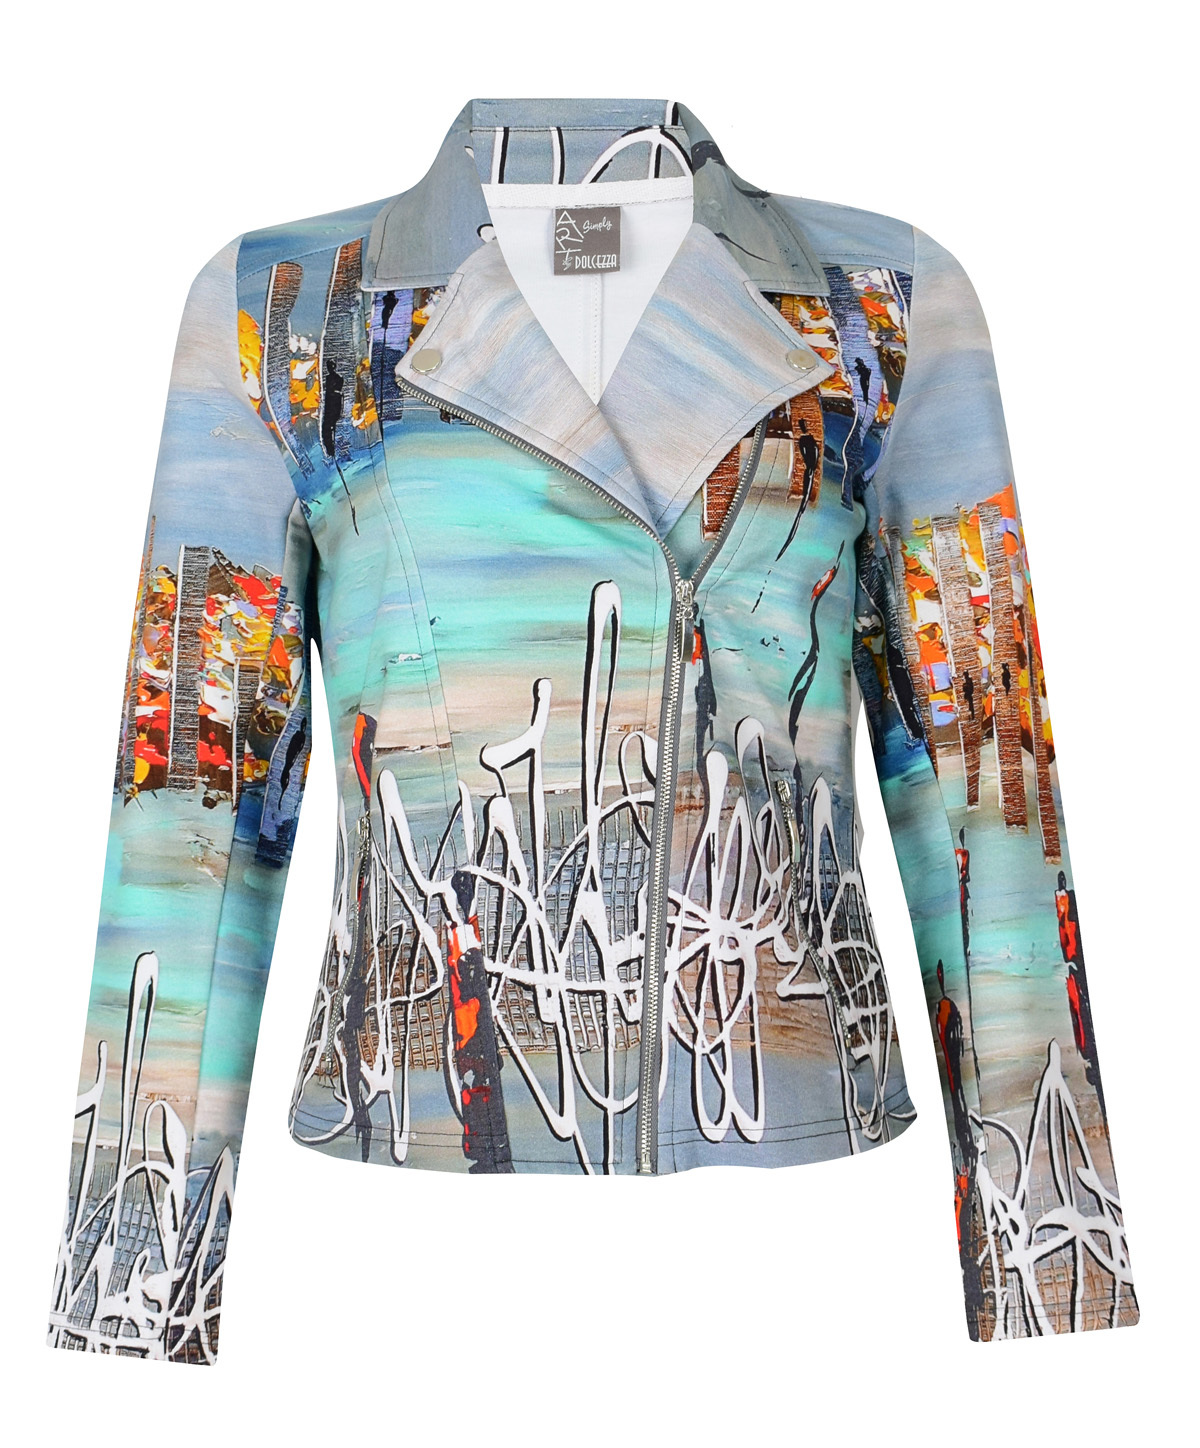 Simply Art Dolcezza: Indeed A Picture Perfect Beach Abstract Art Zip Moto Jacket SOLD OUT Dolcezza_SimplyArt_59675